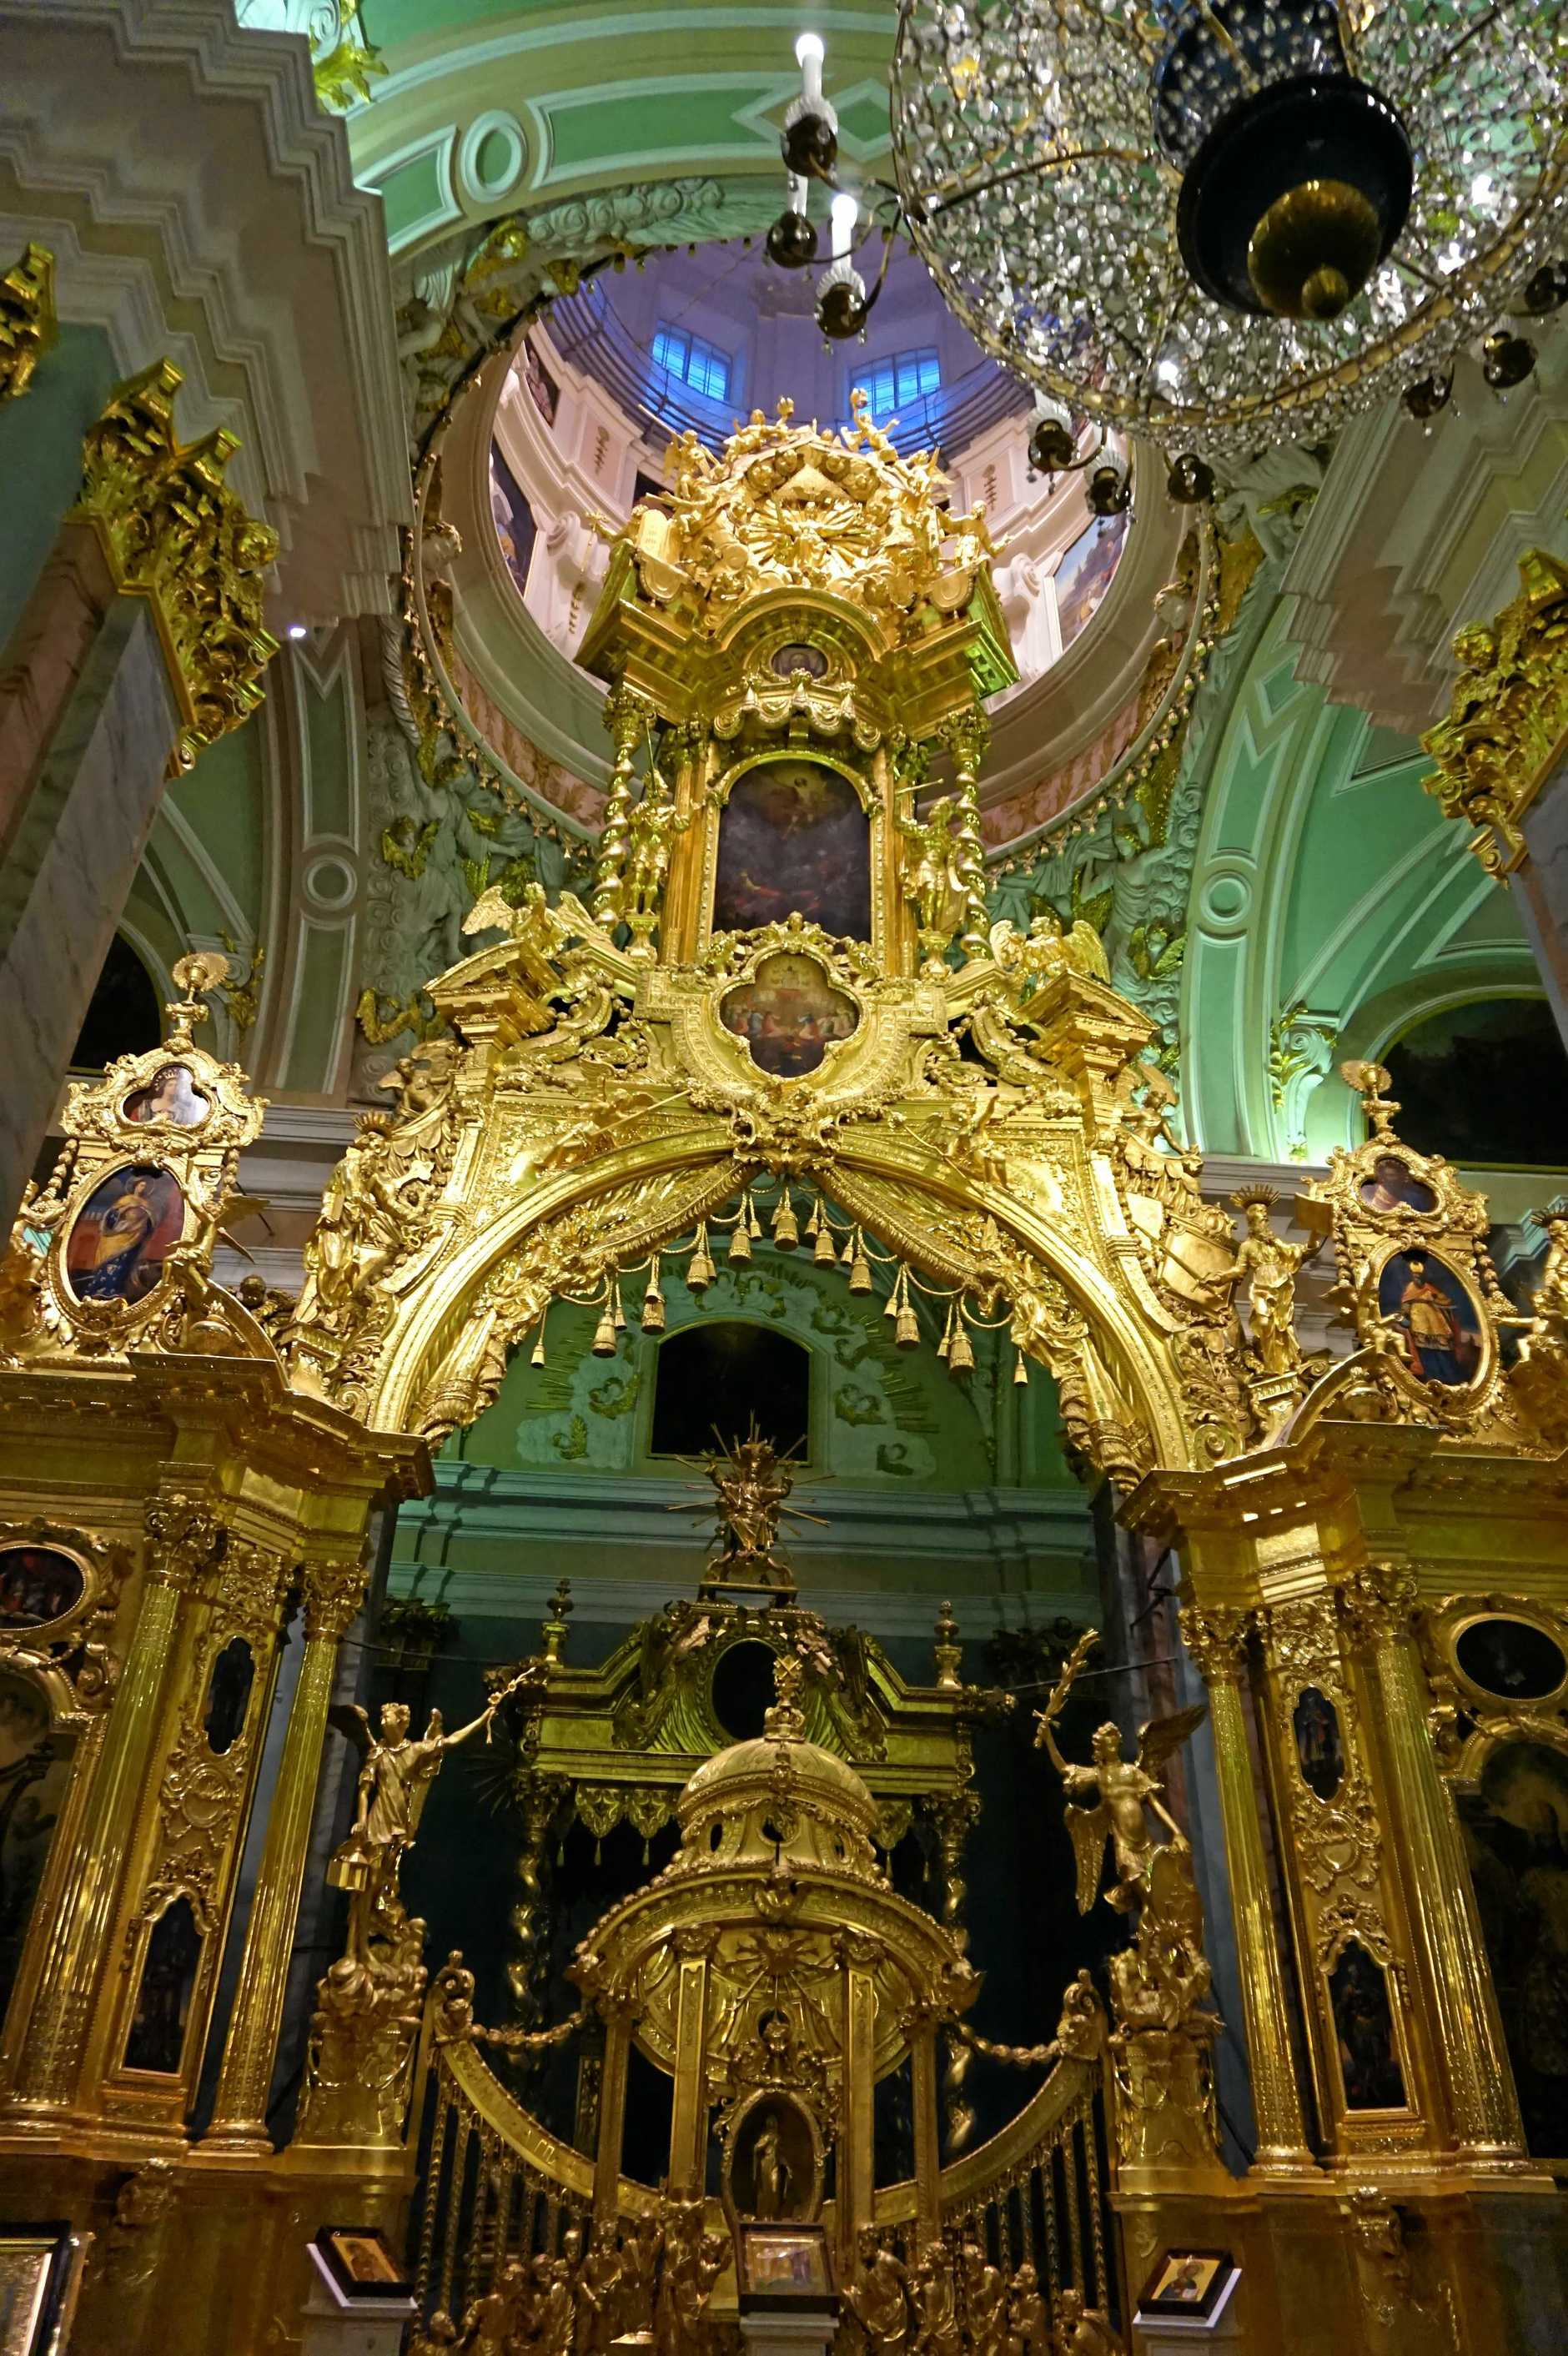 Inside the Peter and Paul Cathedral in St Petersburg, Russia, where the Russian Imperial family is buried.